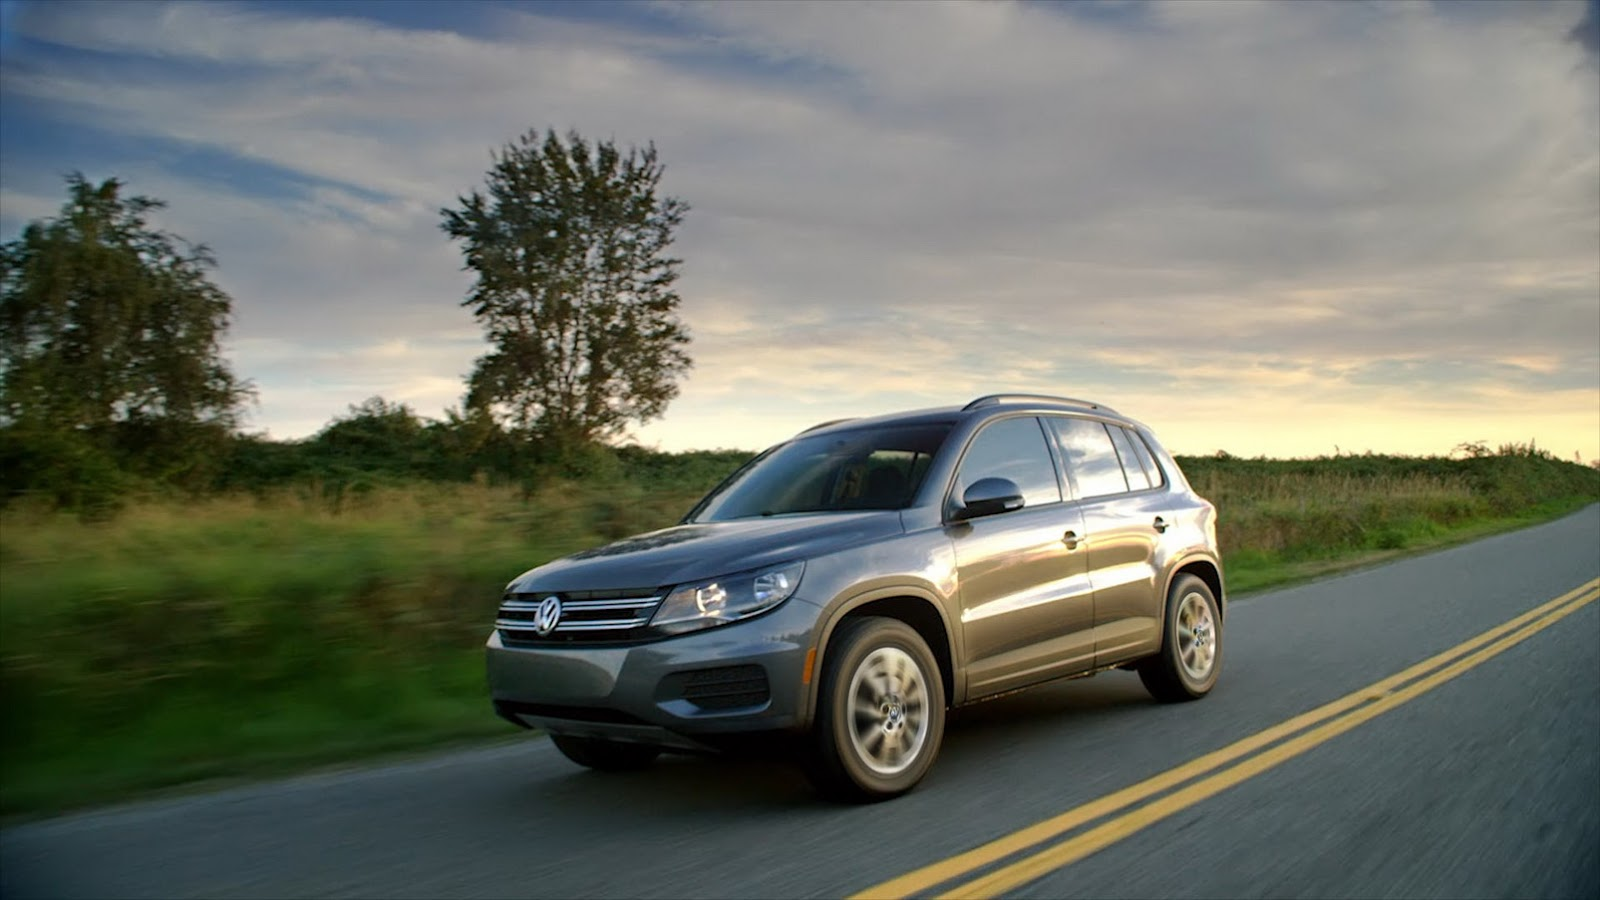 2017 volkswagen tiguan limited u s model